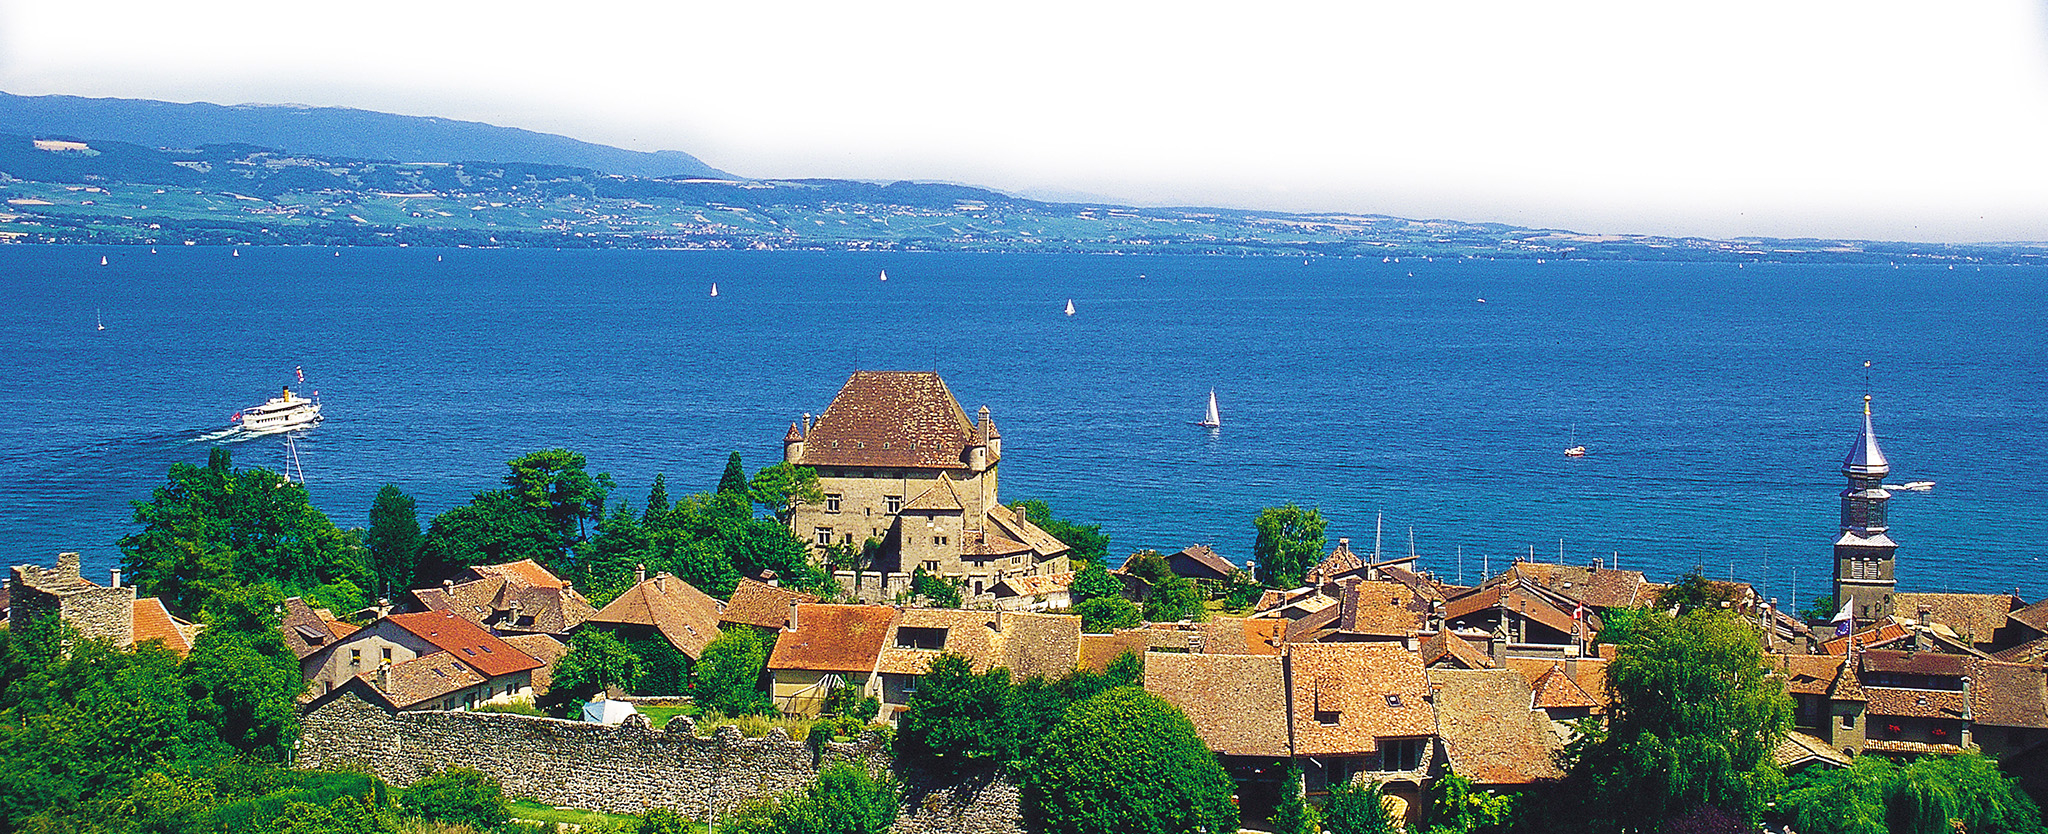 kt_2020_380_Keytours_excursions_Swisstours_yvoire6_2048_10